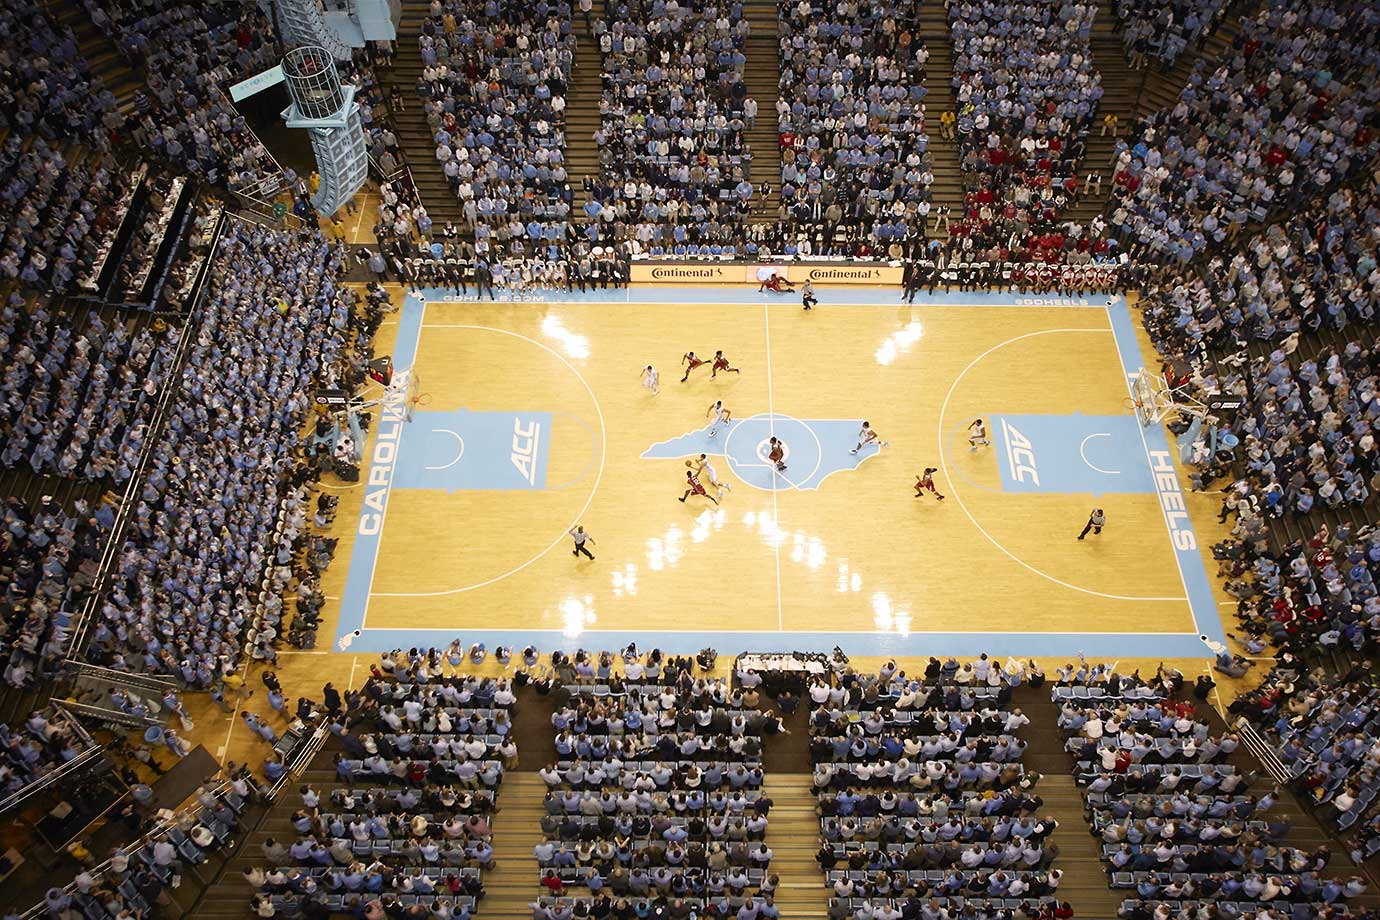 A look at the Dean Smith Center during a game between North Carolina and North Carolina State.